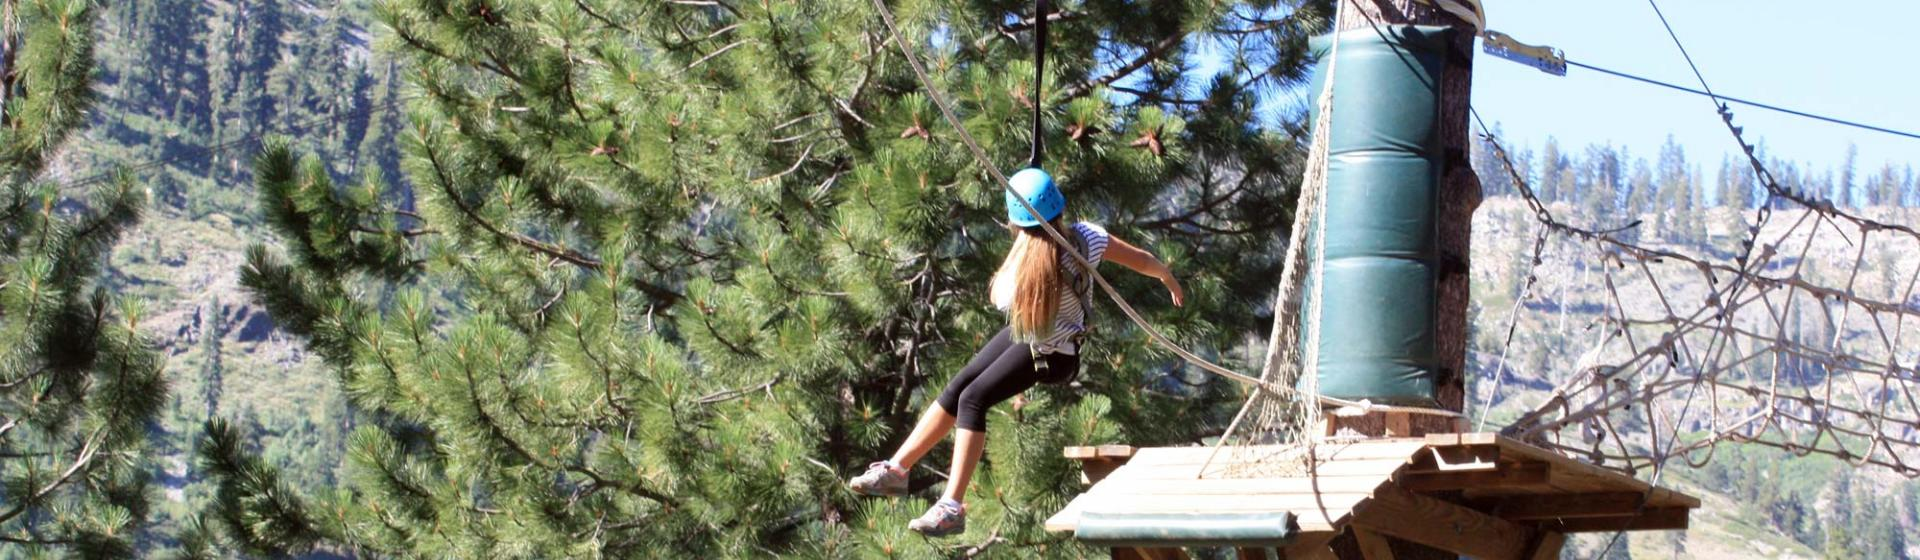 Tahoe treetop ropes course